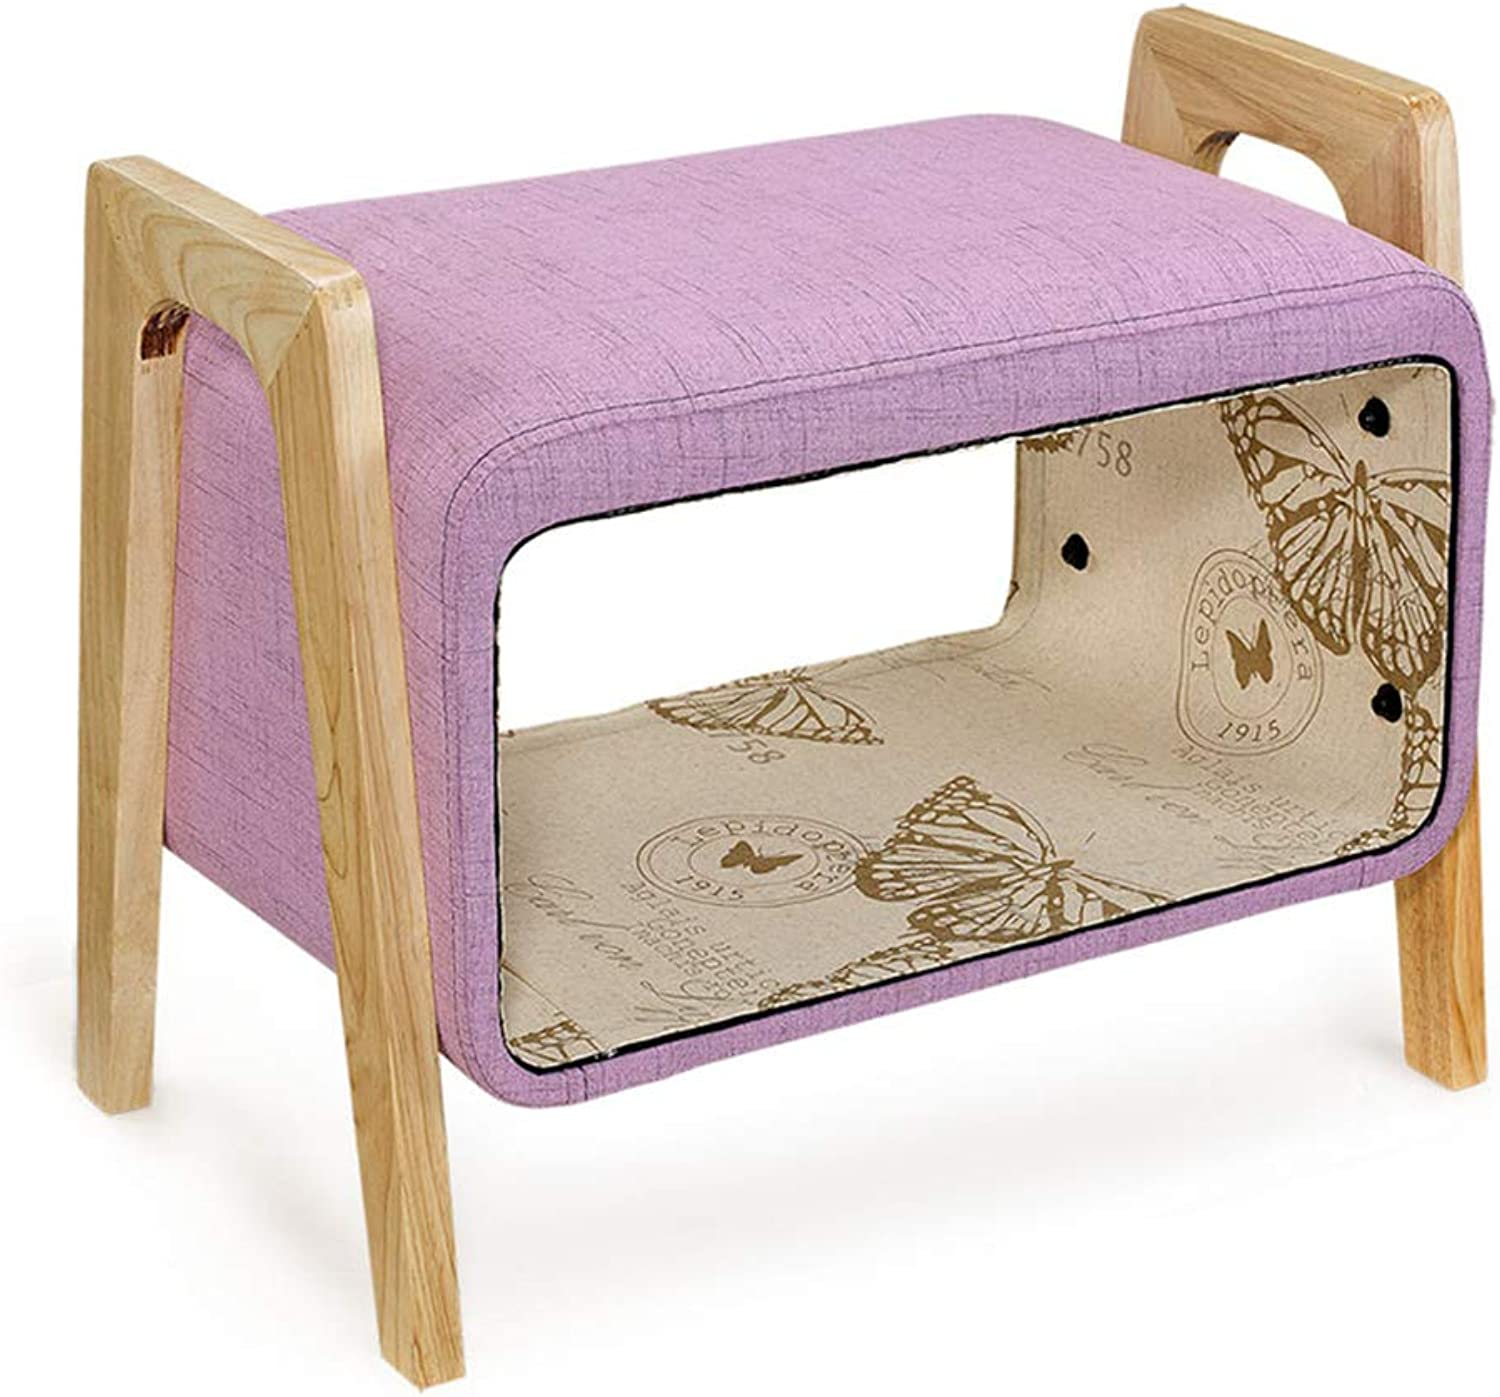 Stool Storage shoes Bench 60x48x36cm Solid Wood Foot Storage Fabric Sofa Stool (color   purple)